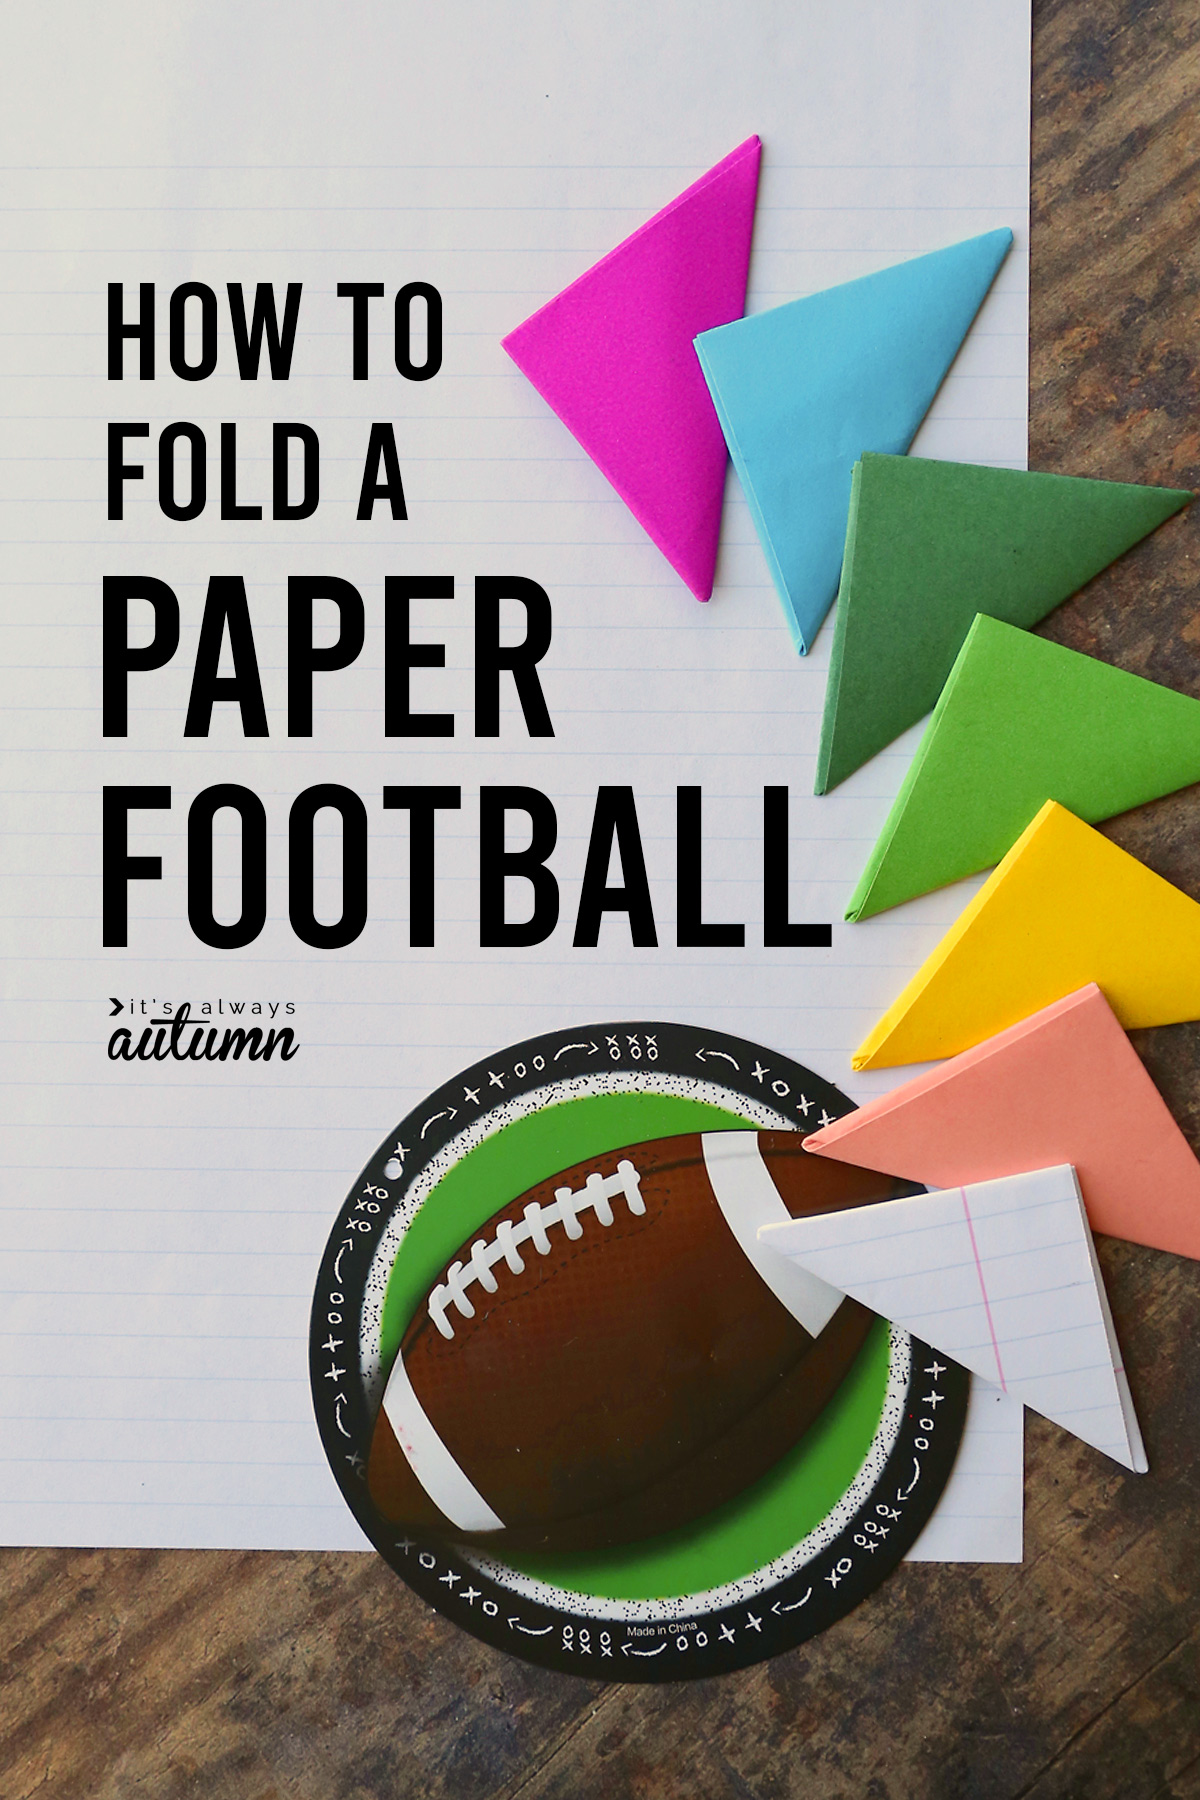 Learn how to make a paper football and play flick football!